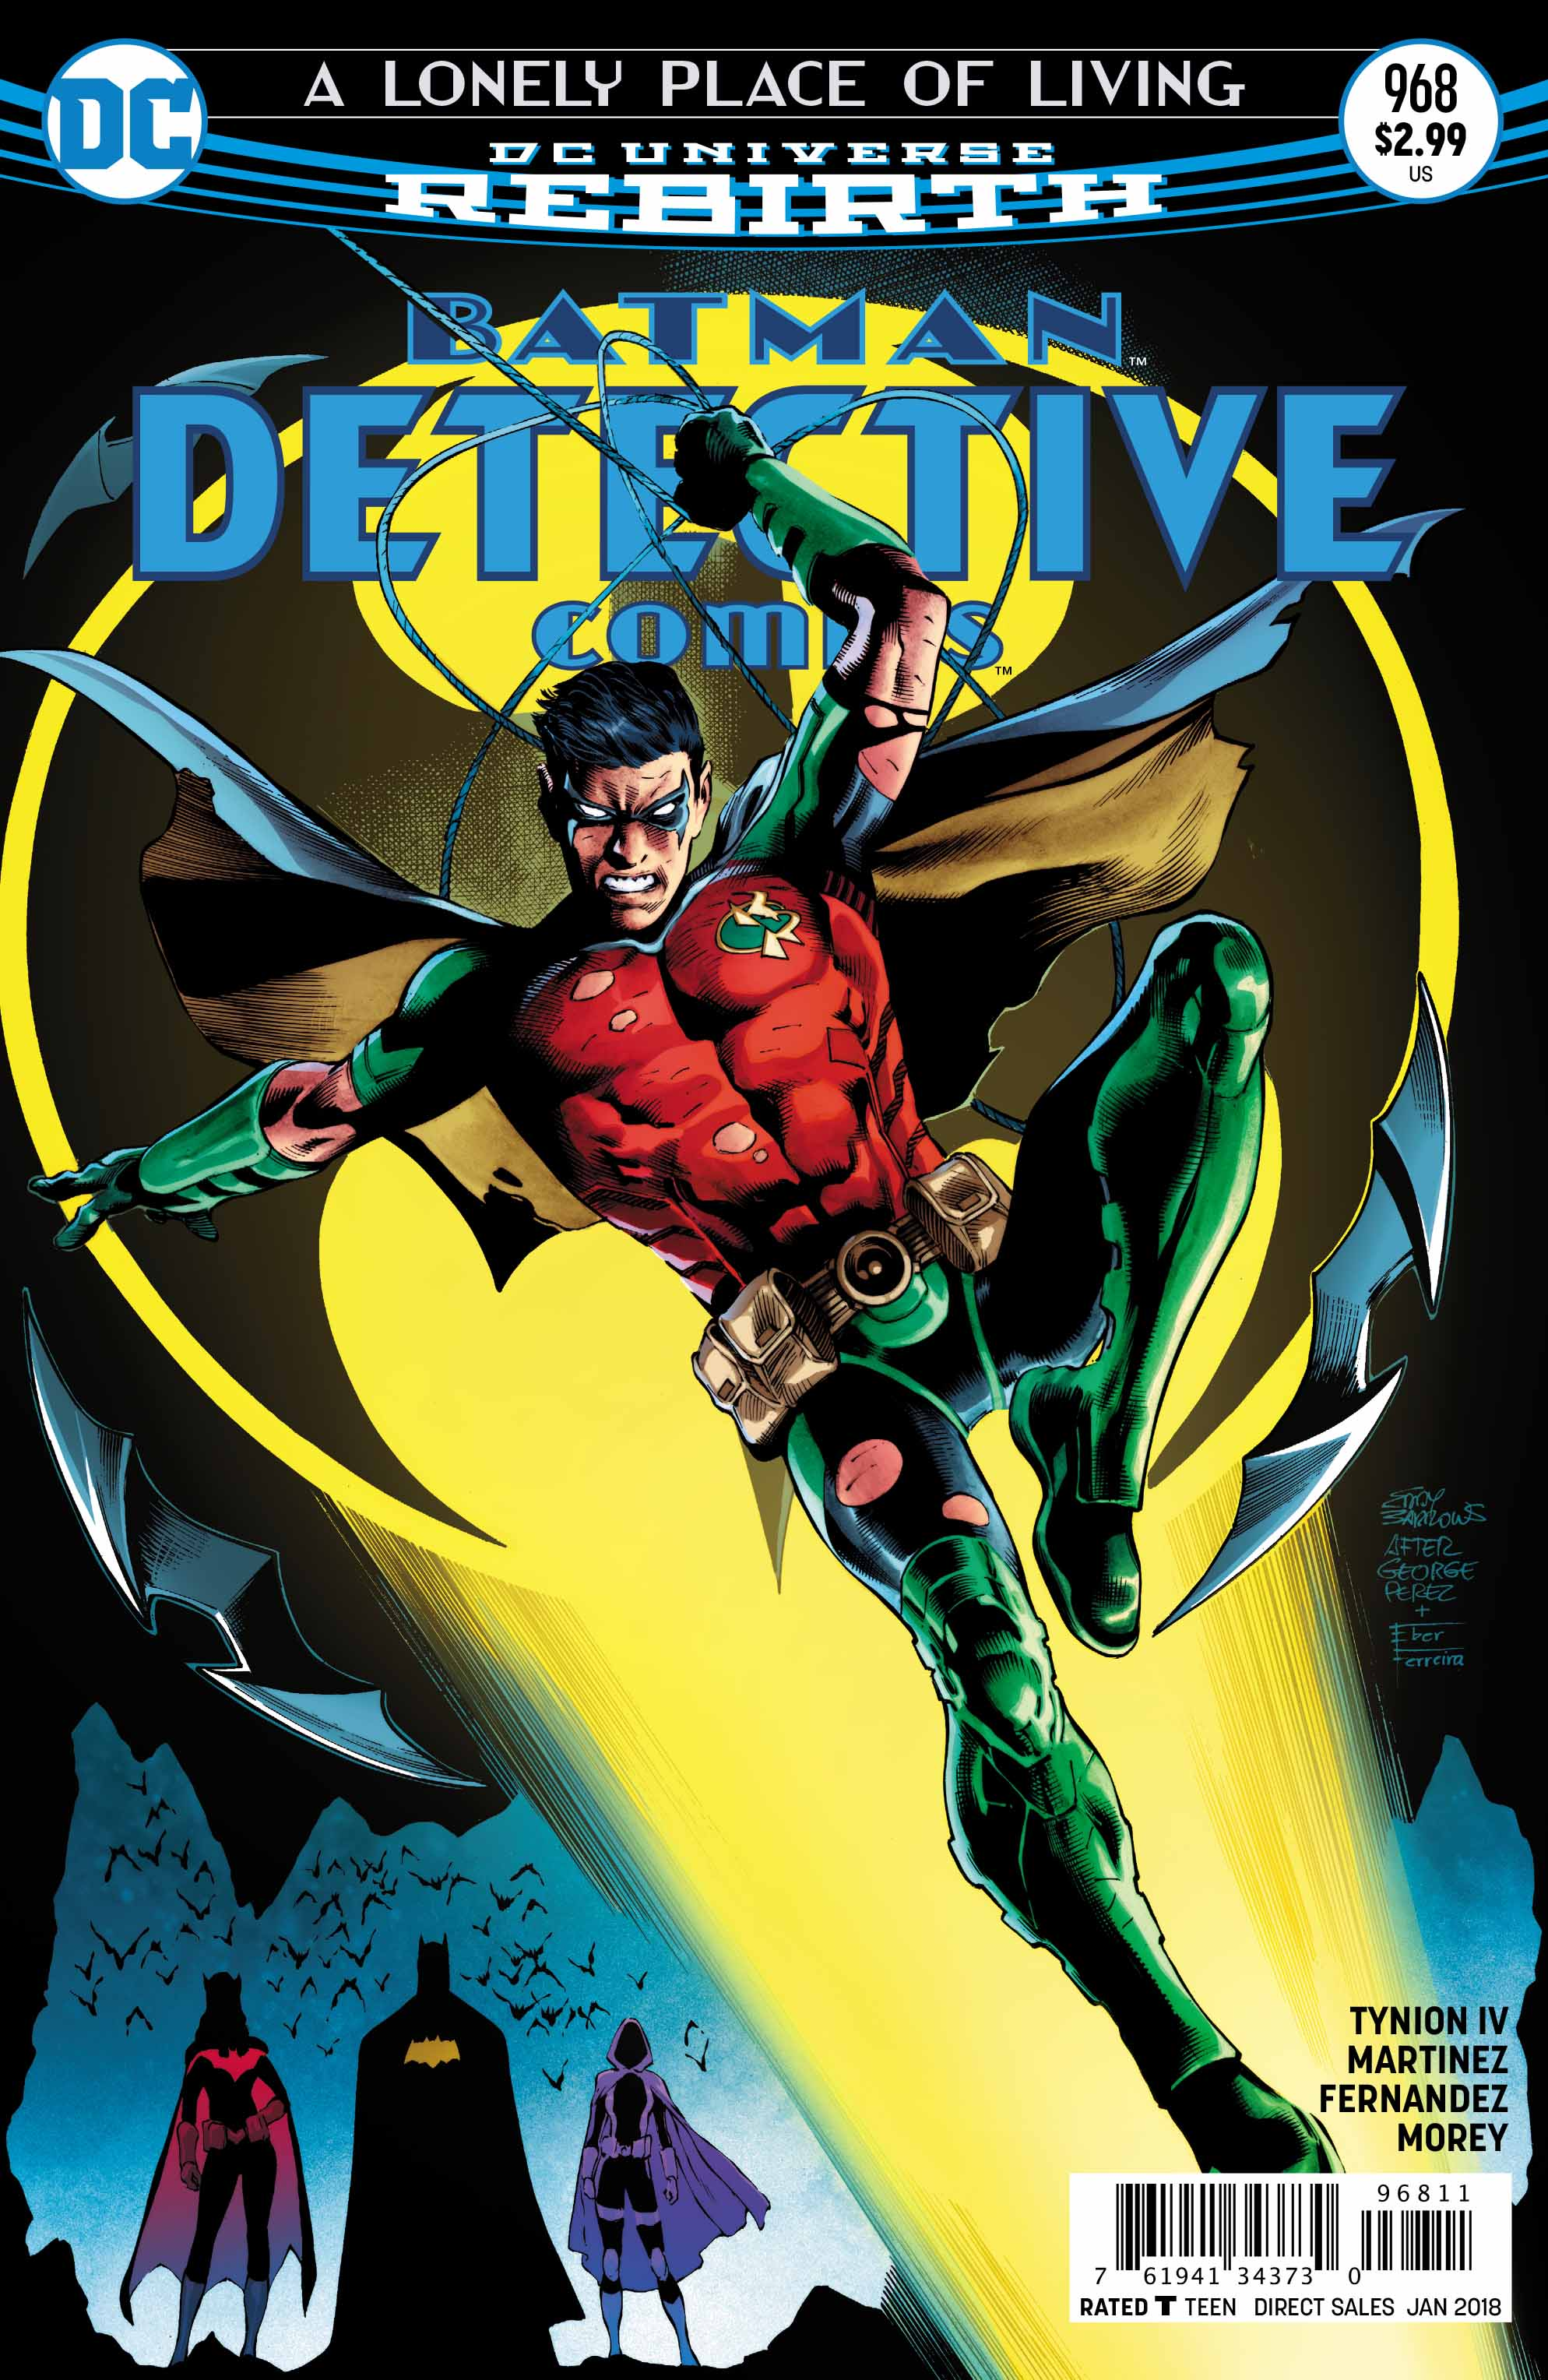 Cover for Detective Comics #968 by Eddy Barrows